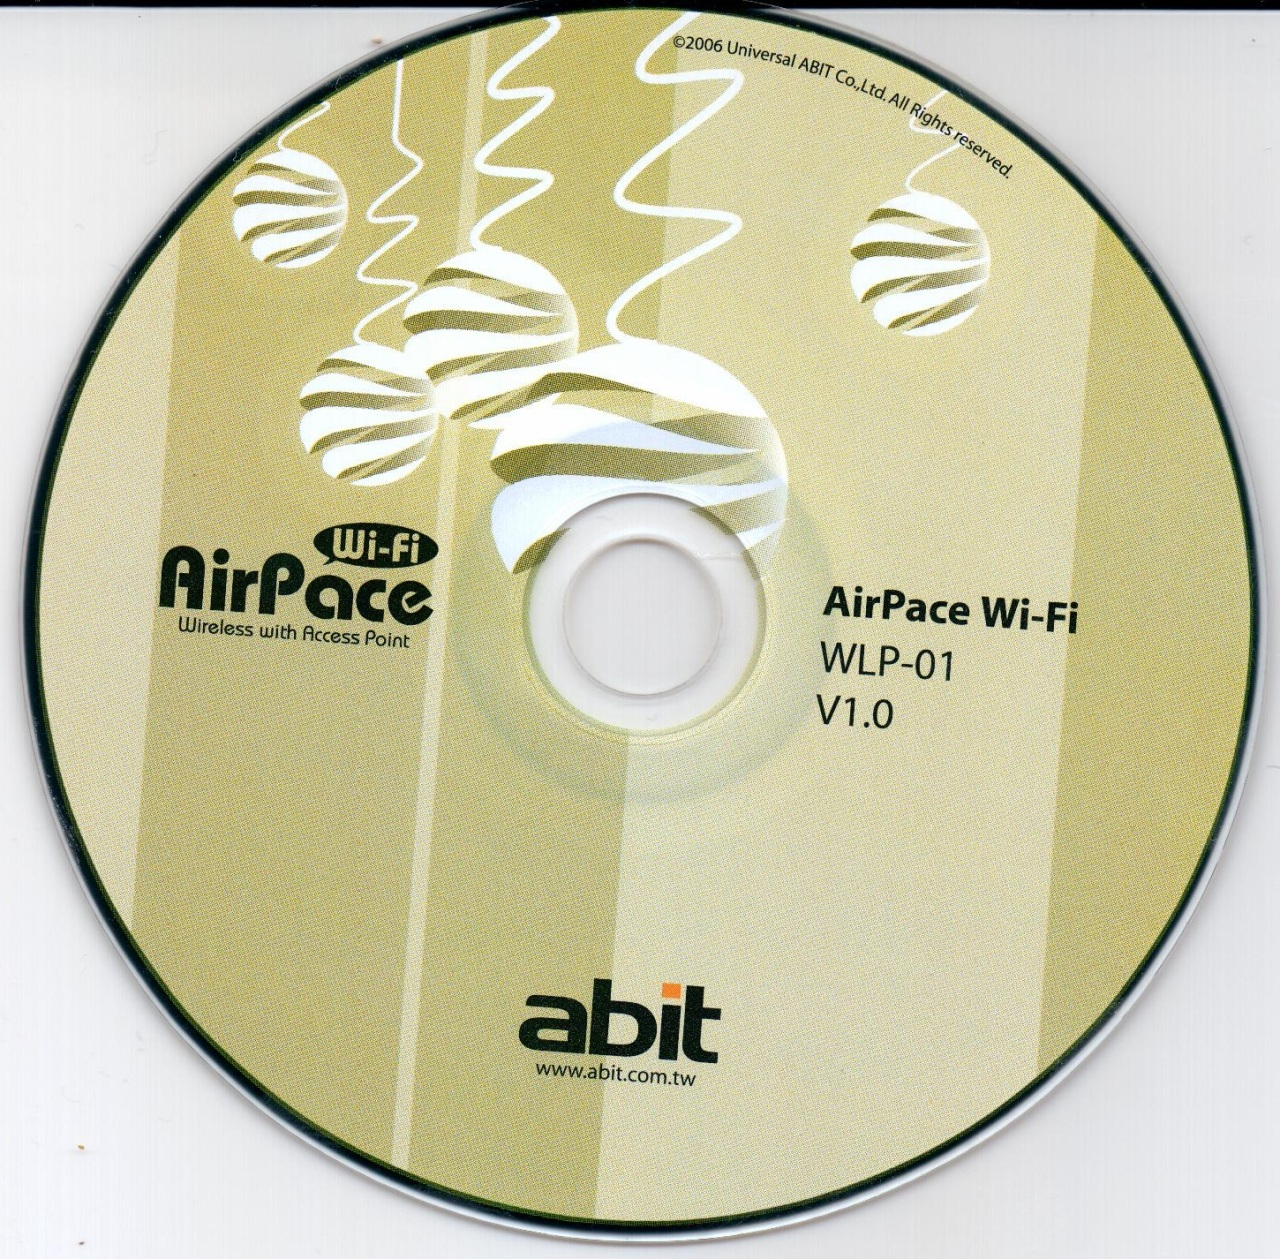 Образ диска Abit AirPace Wi-Fi